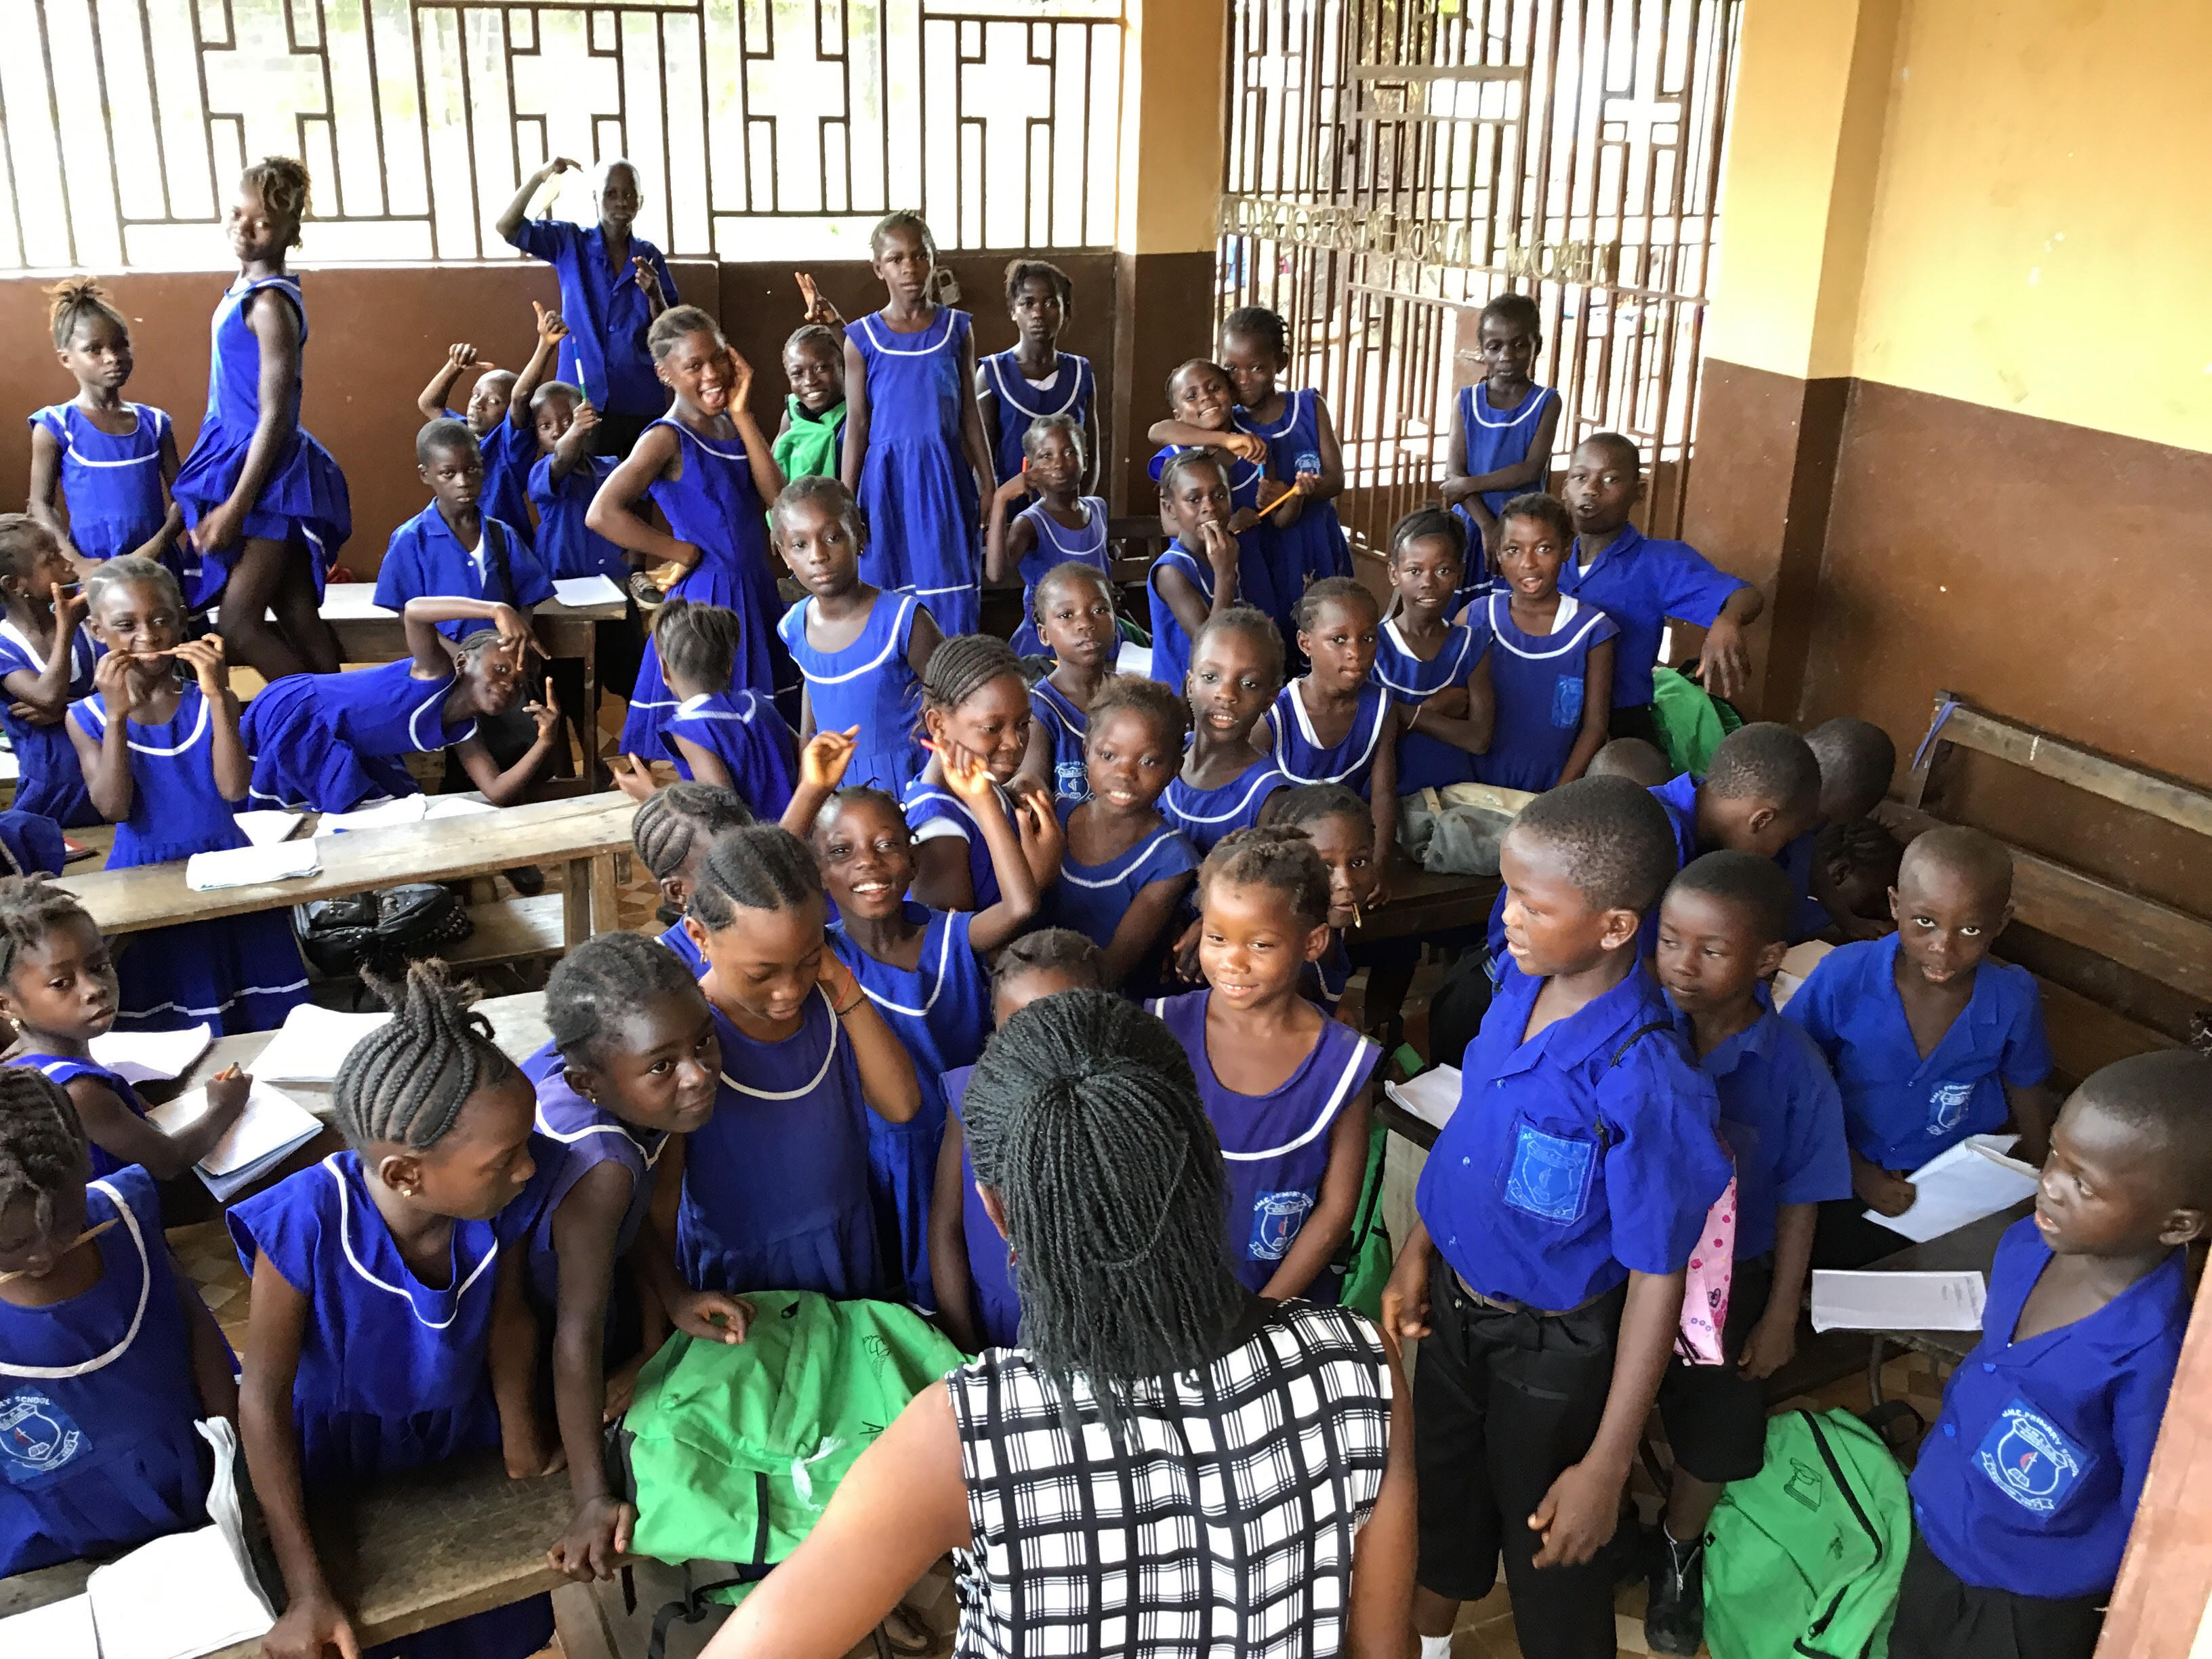 Increased admissions due to the government free education policy have caused some classes of United Methodist Church Primary School in Njagboima to temporarily relocate in the porch of the Rogers Memorial United Methodist Church. Photo by Phileas Jusu, UMNS.